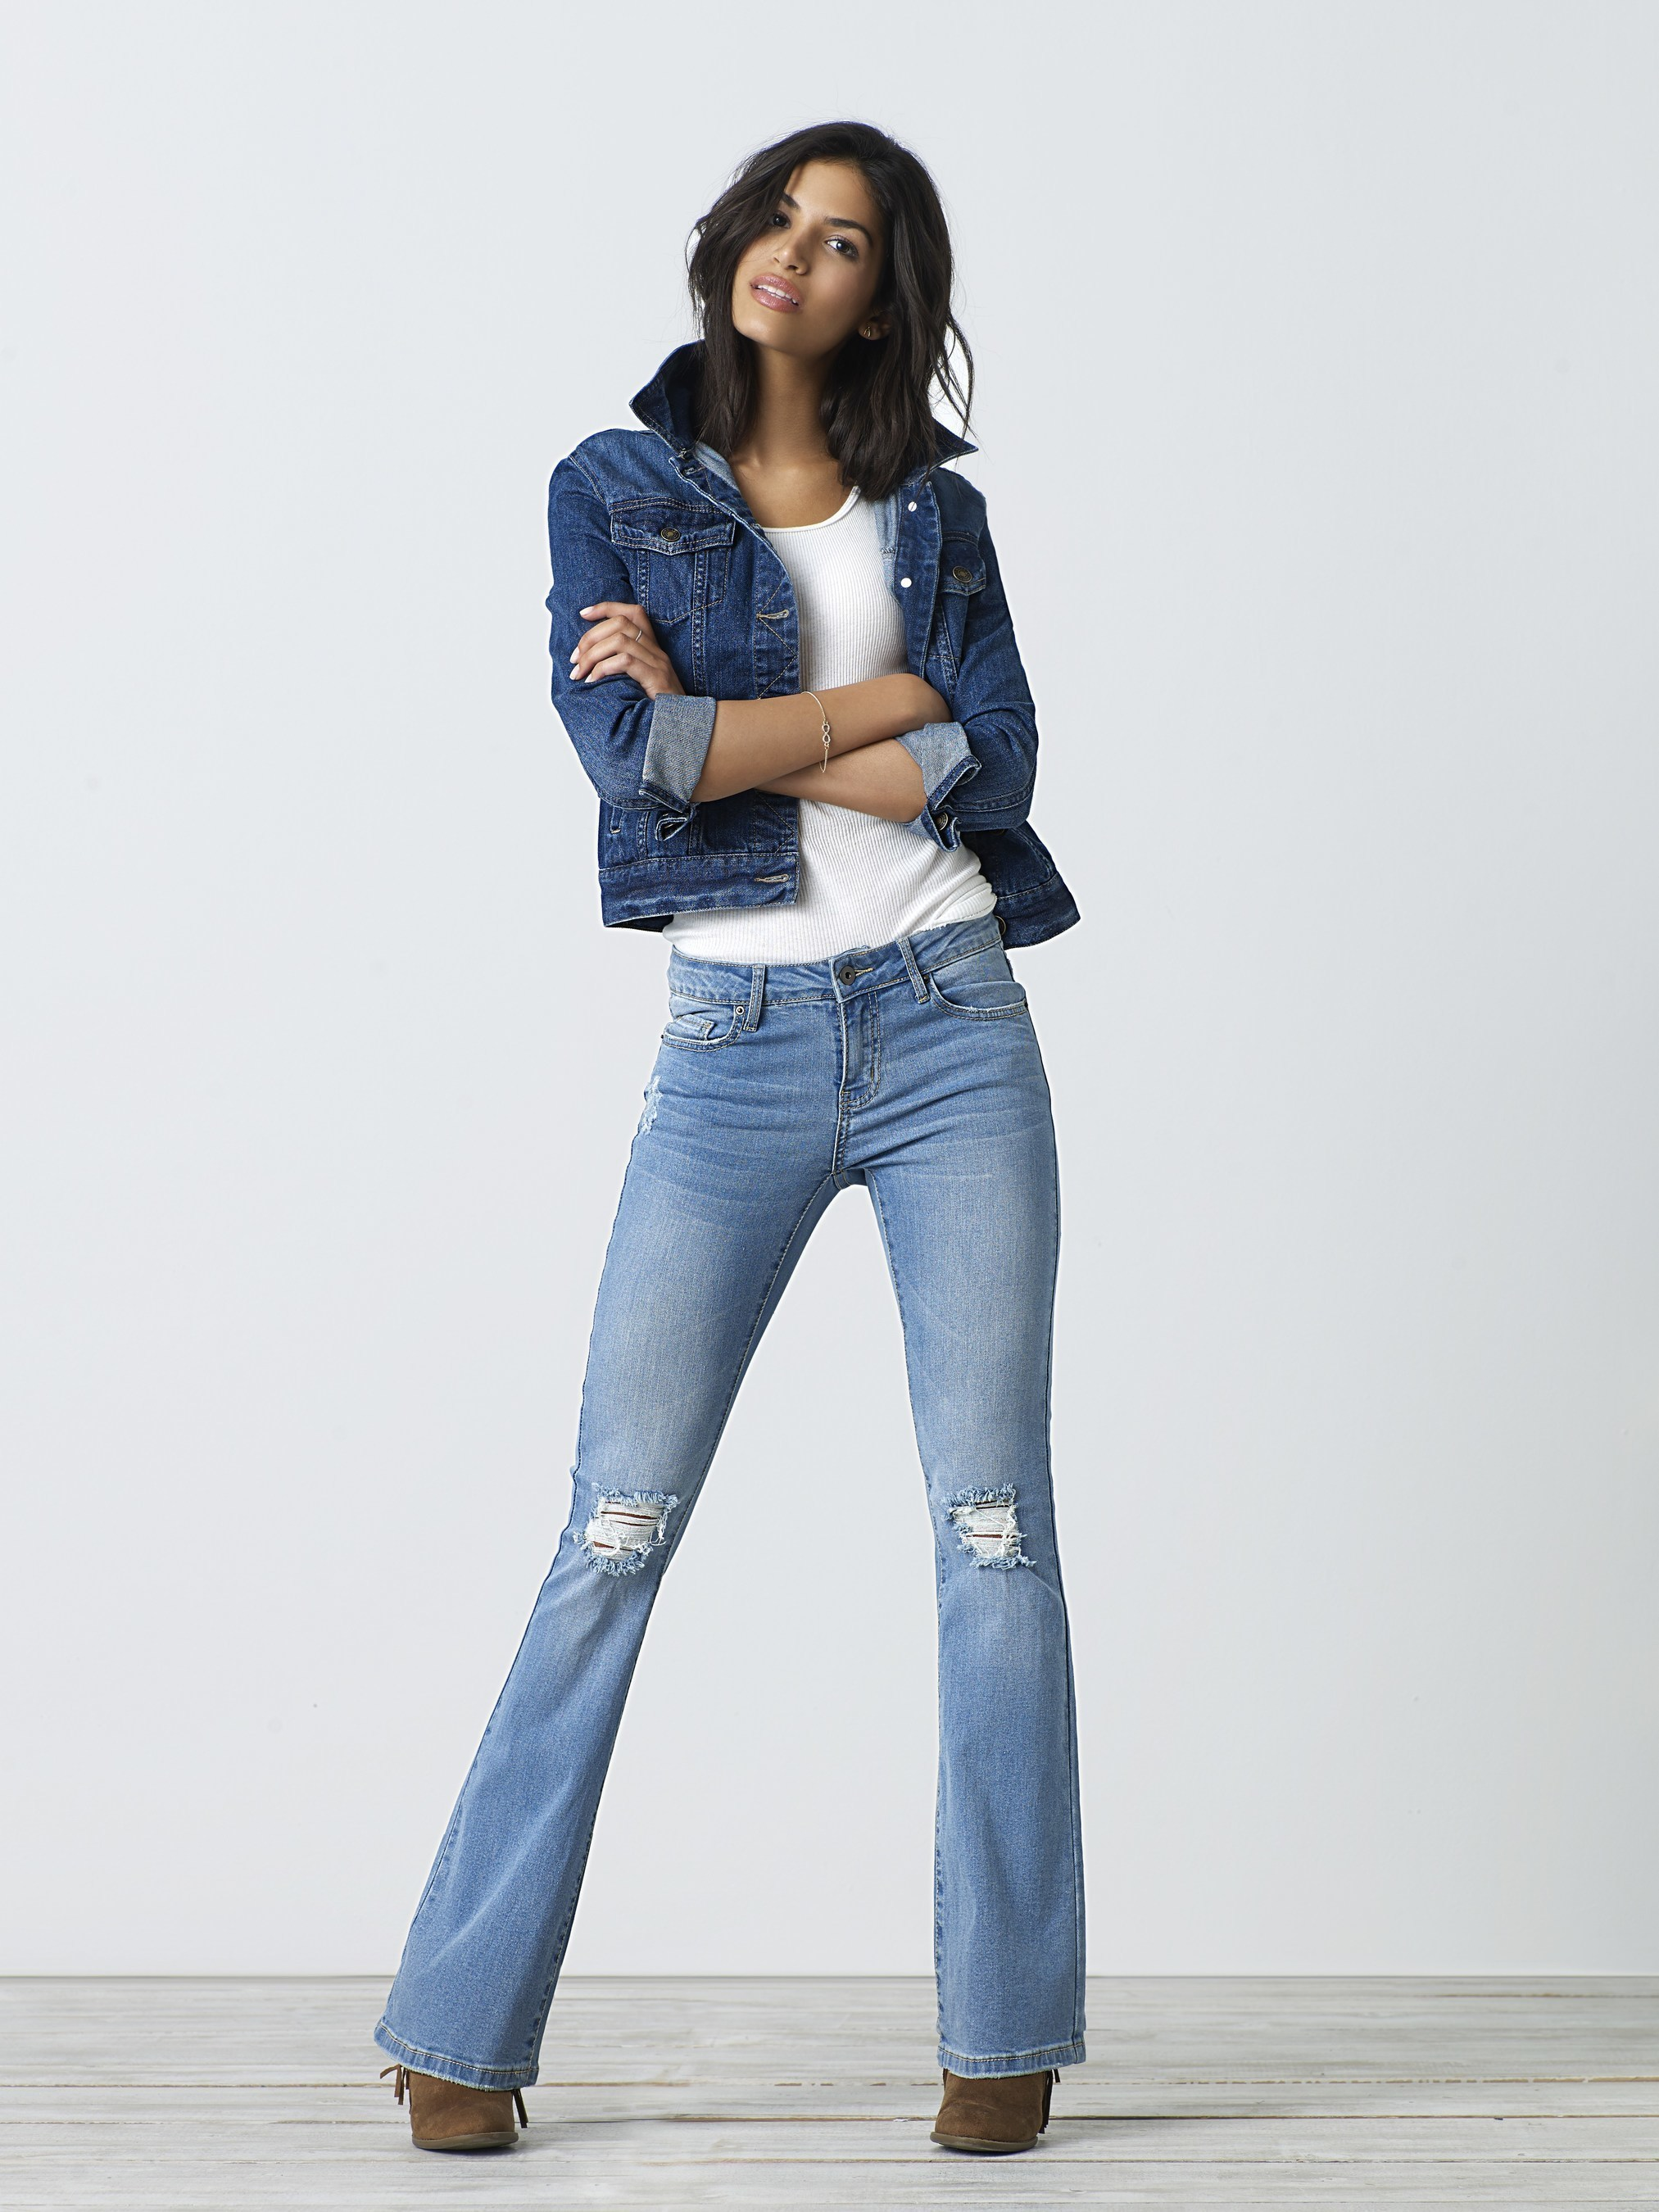 Sears has introduced the new R1893 denim line, just in time for back-to-school season. With a name calling back to the when the Sears Roebuck name first appeared, this new women's collection takes denim to a new level. The collection features six fits and 52 washes - hi-rise jeggings, girlfriend, boot, skinny, jegging, and skinny flare - with higher cotton content and fits with varying stretch, making the jeans feel buttery, yet durable, and holding in the right places.